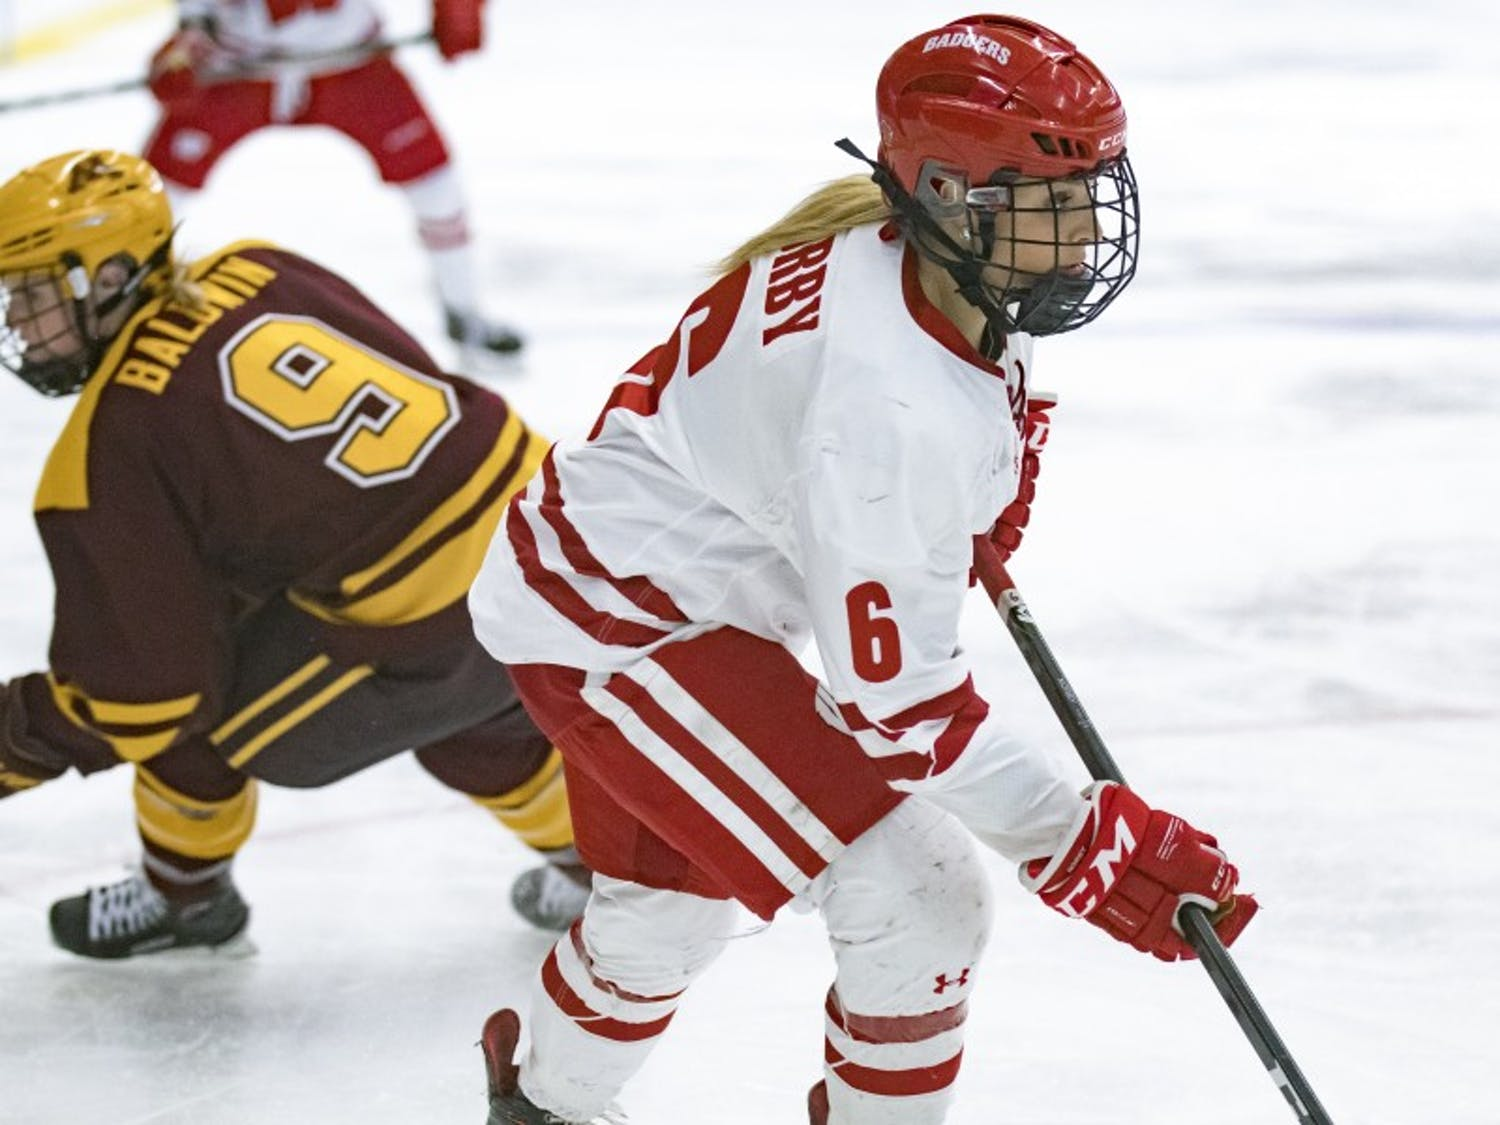 Minnesota native Presley Norby tied for a team high with five shots on goal in Wisconsin's loss to the Gophers on Saturday.